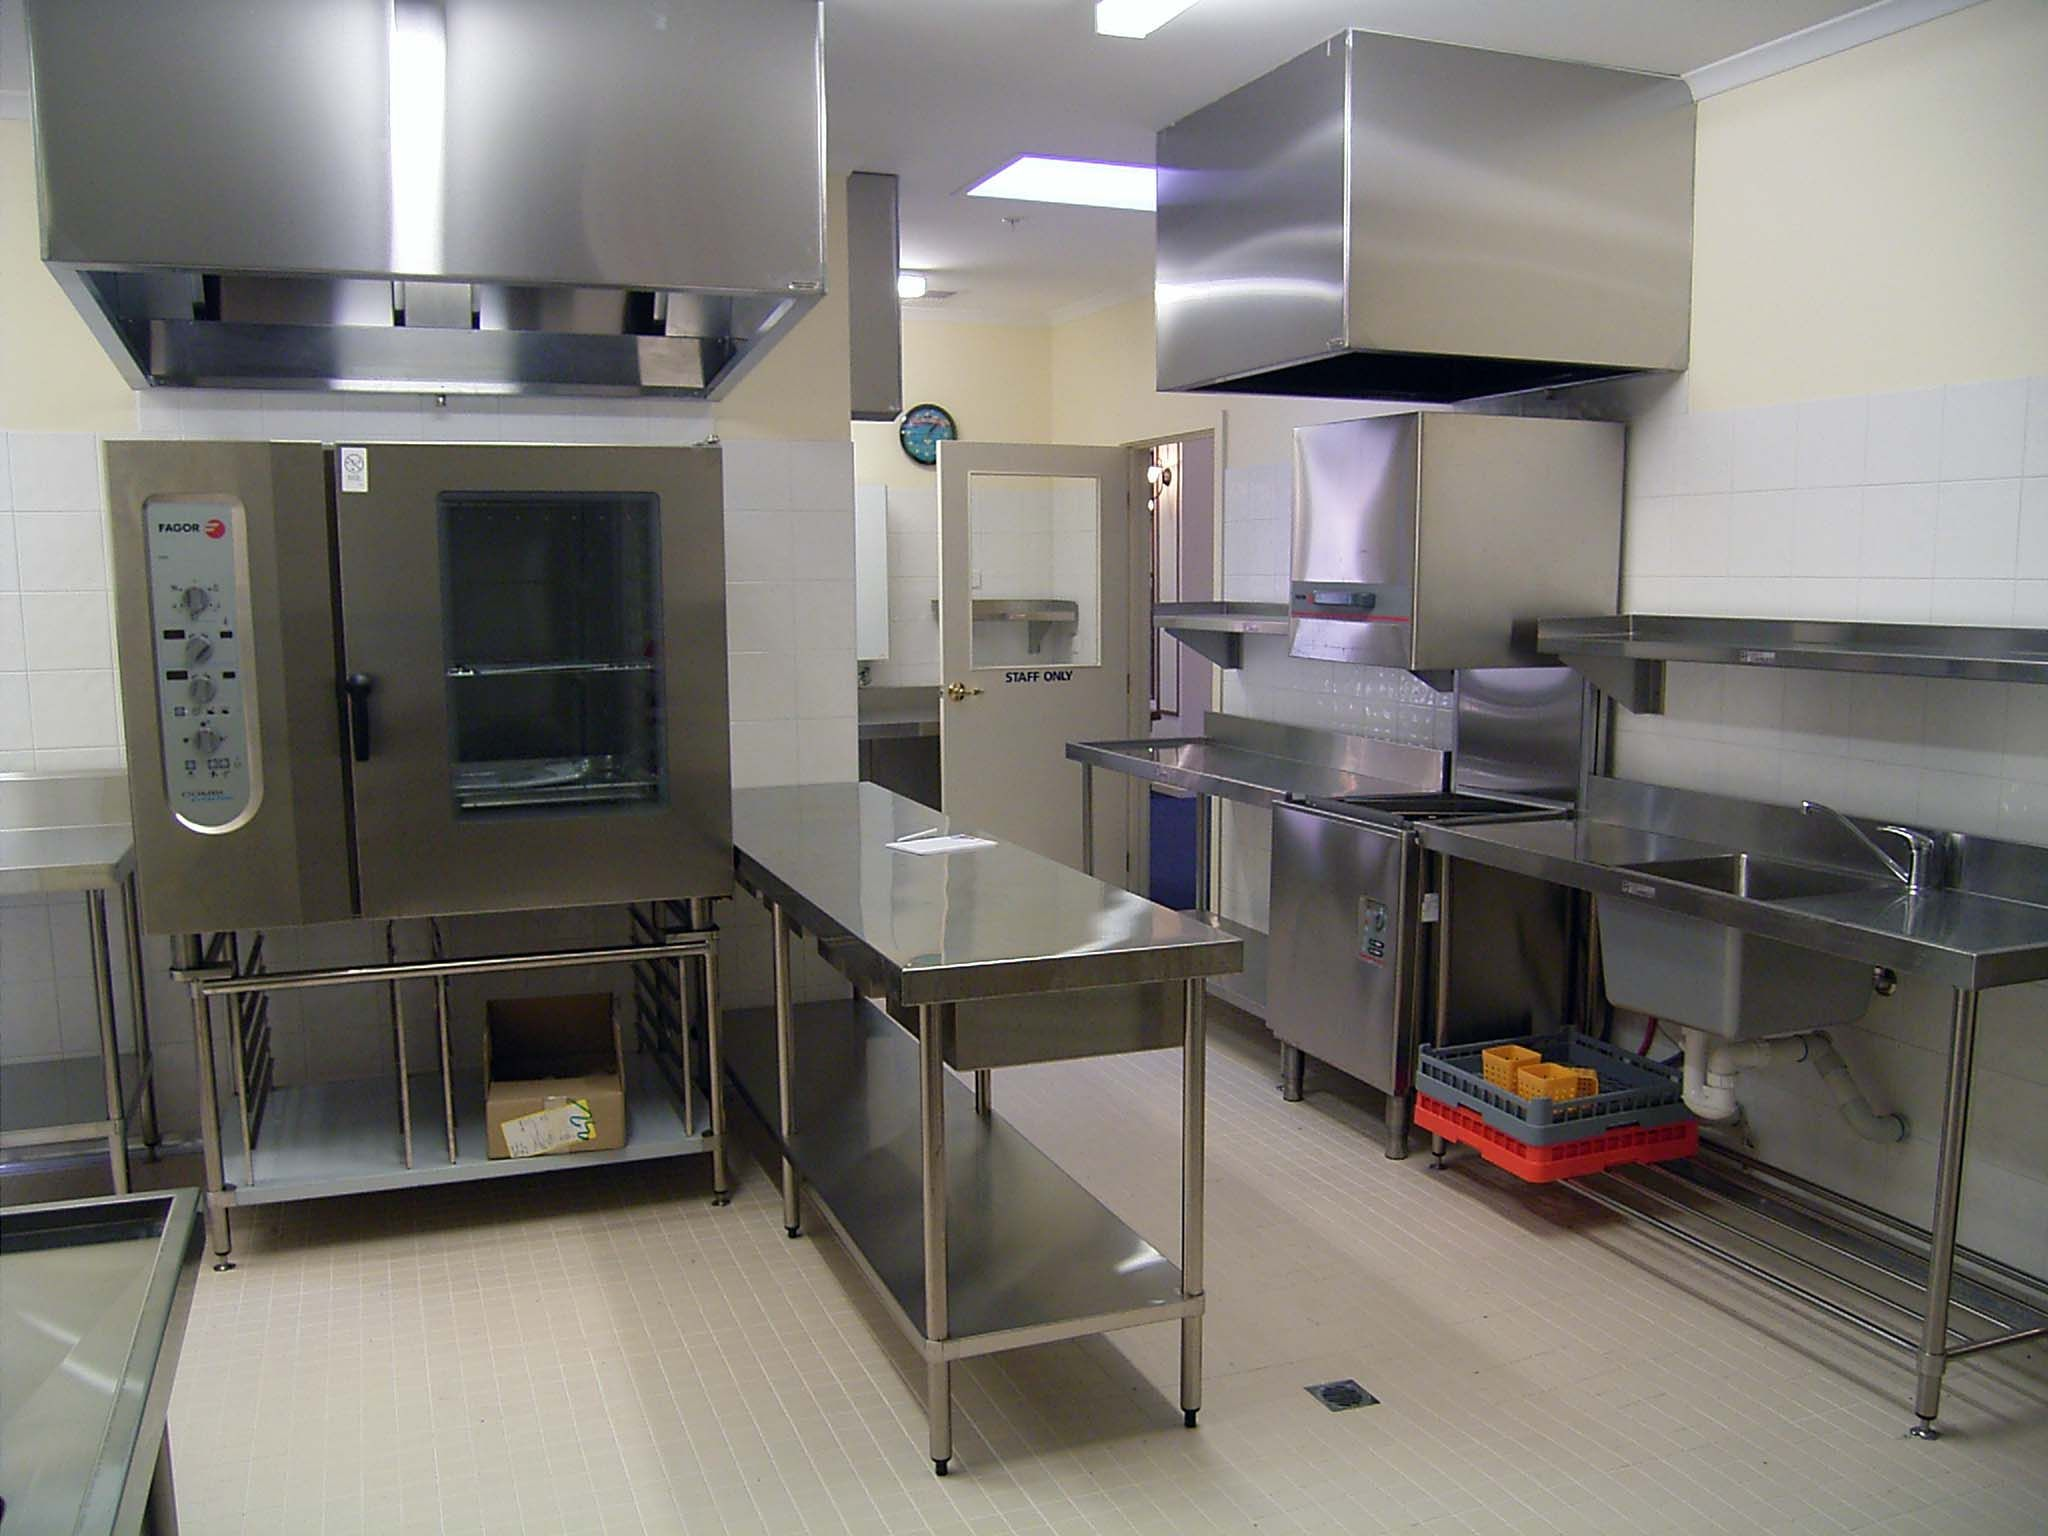 Restaurant kitchen design layout example - About Commercial Kitchen Design Source Google Com Pk What Began As A Restaurant Layoutpizza